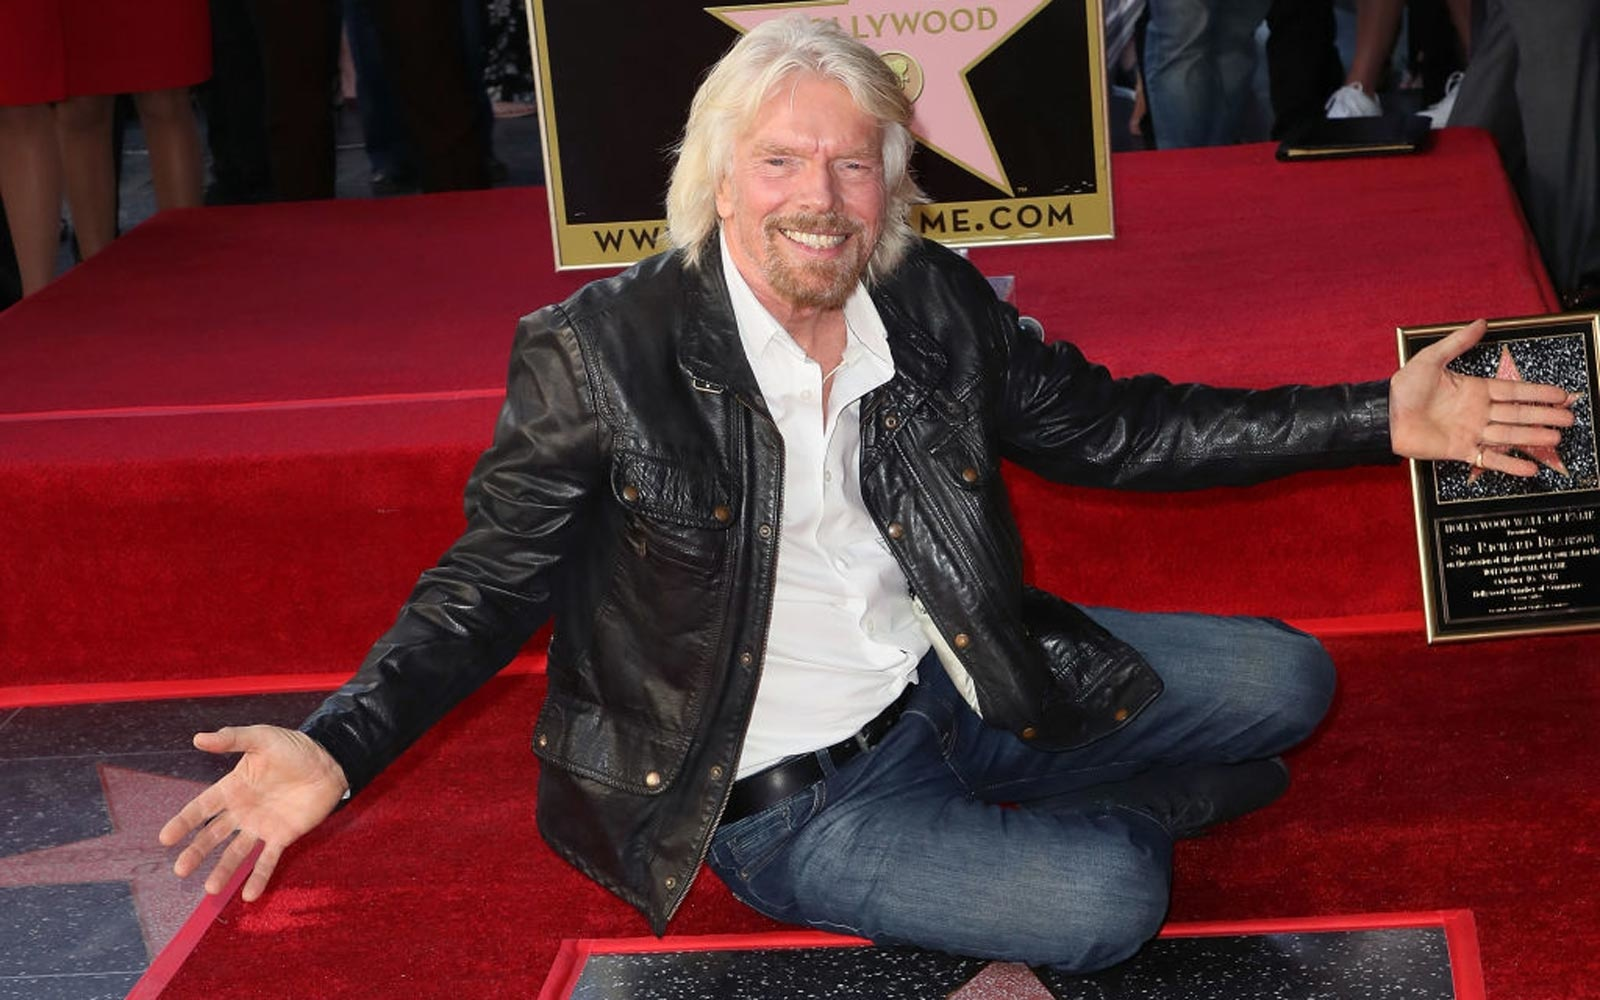 How to pack smarter according to Richard Branson, Barack Obama, and Chrissy Teigen